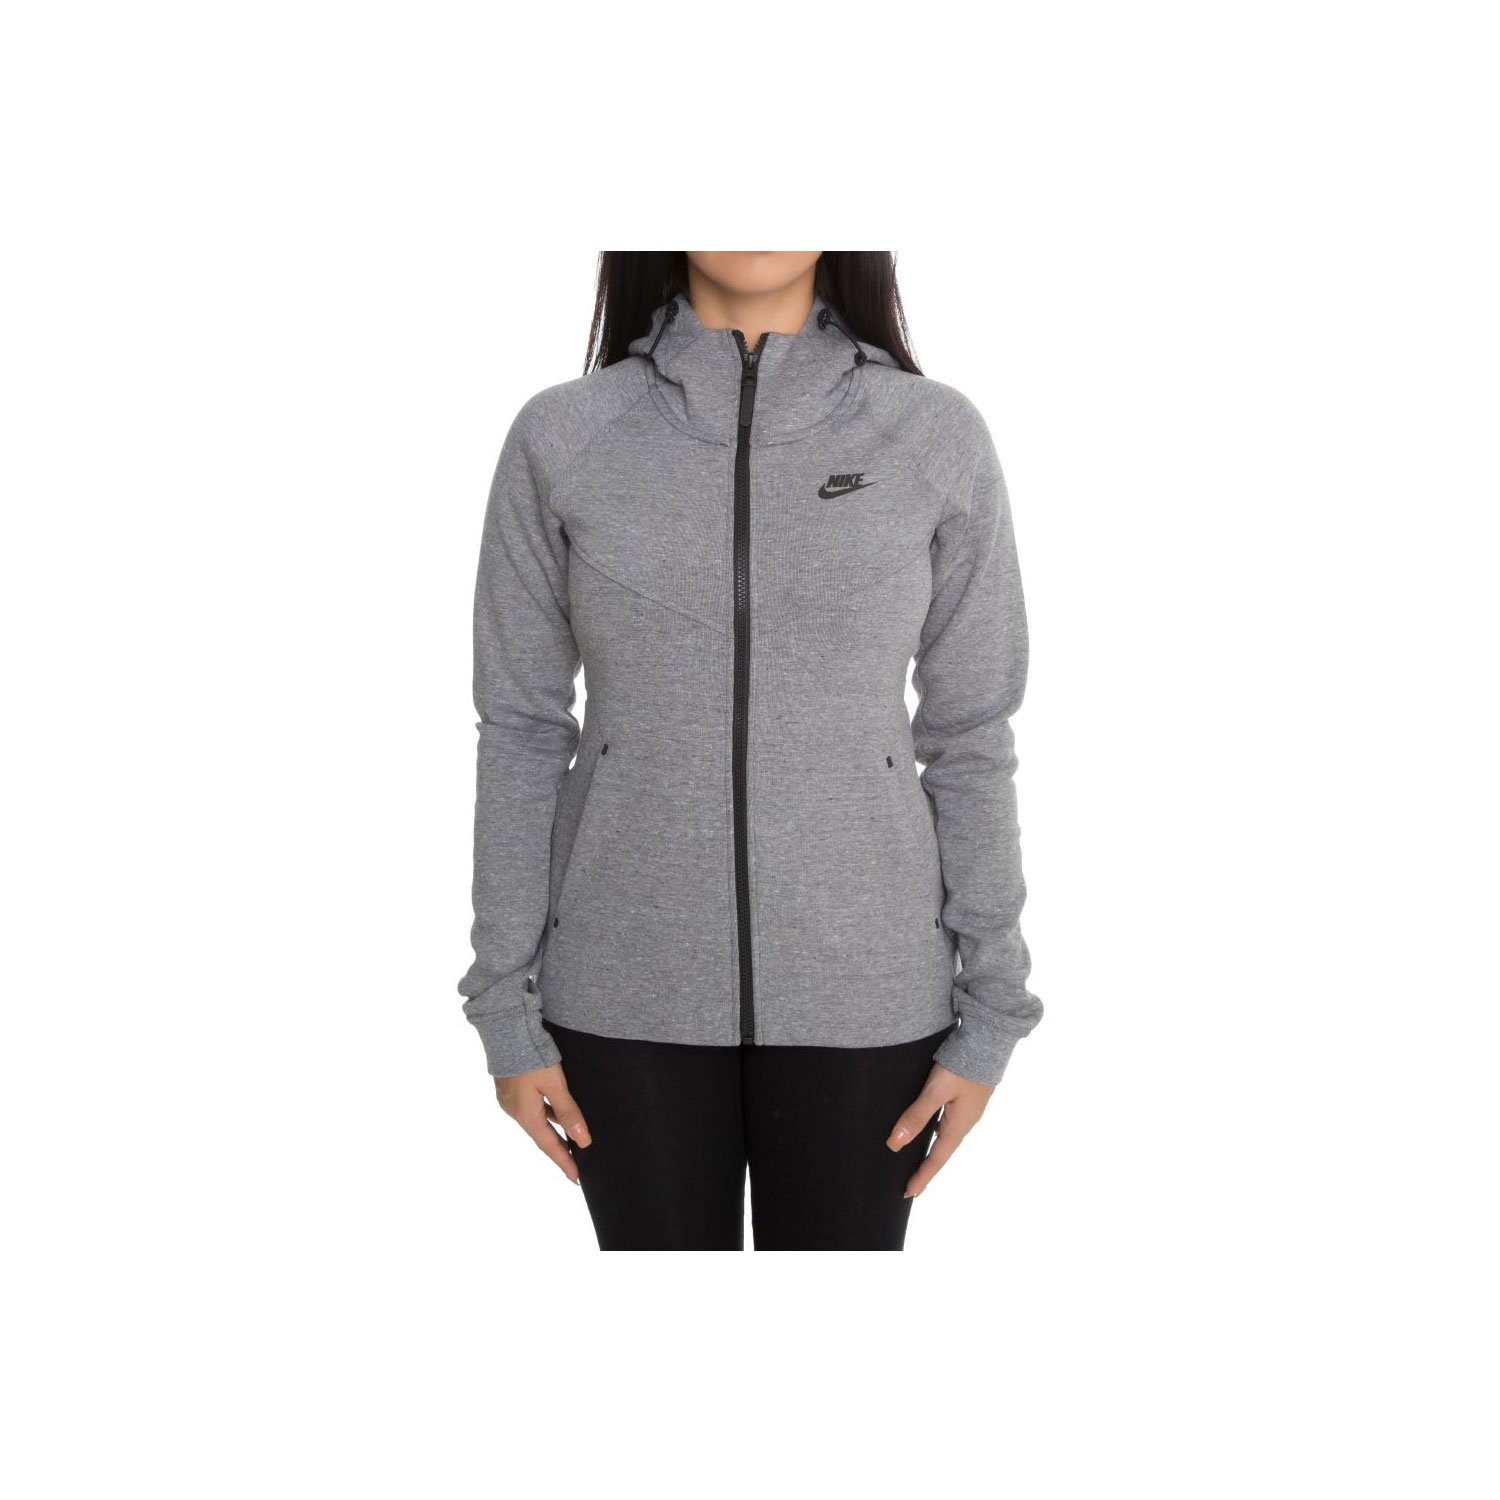 Nike Women's Tech Fleece Destroyer Jacket - Carbon Grey/Heather -L by NIKE